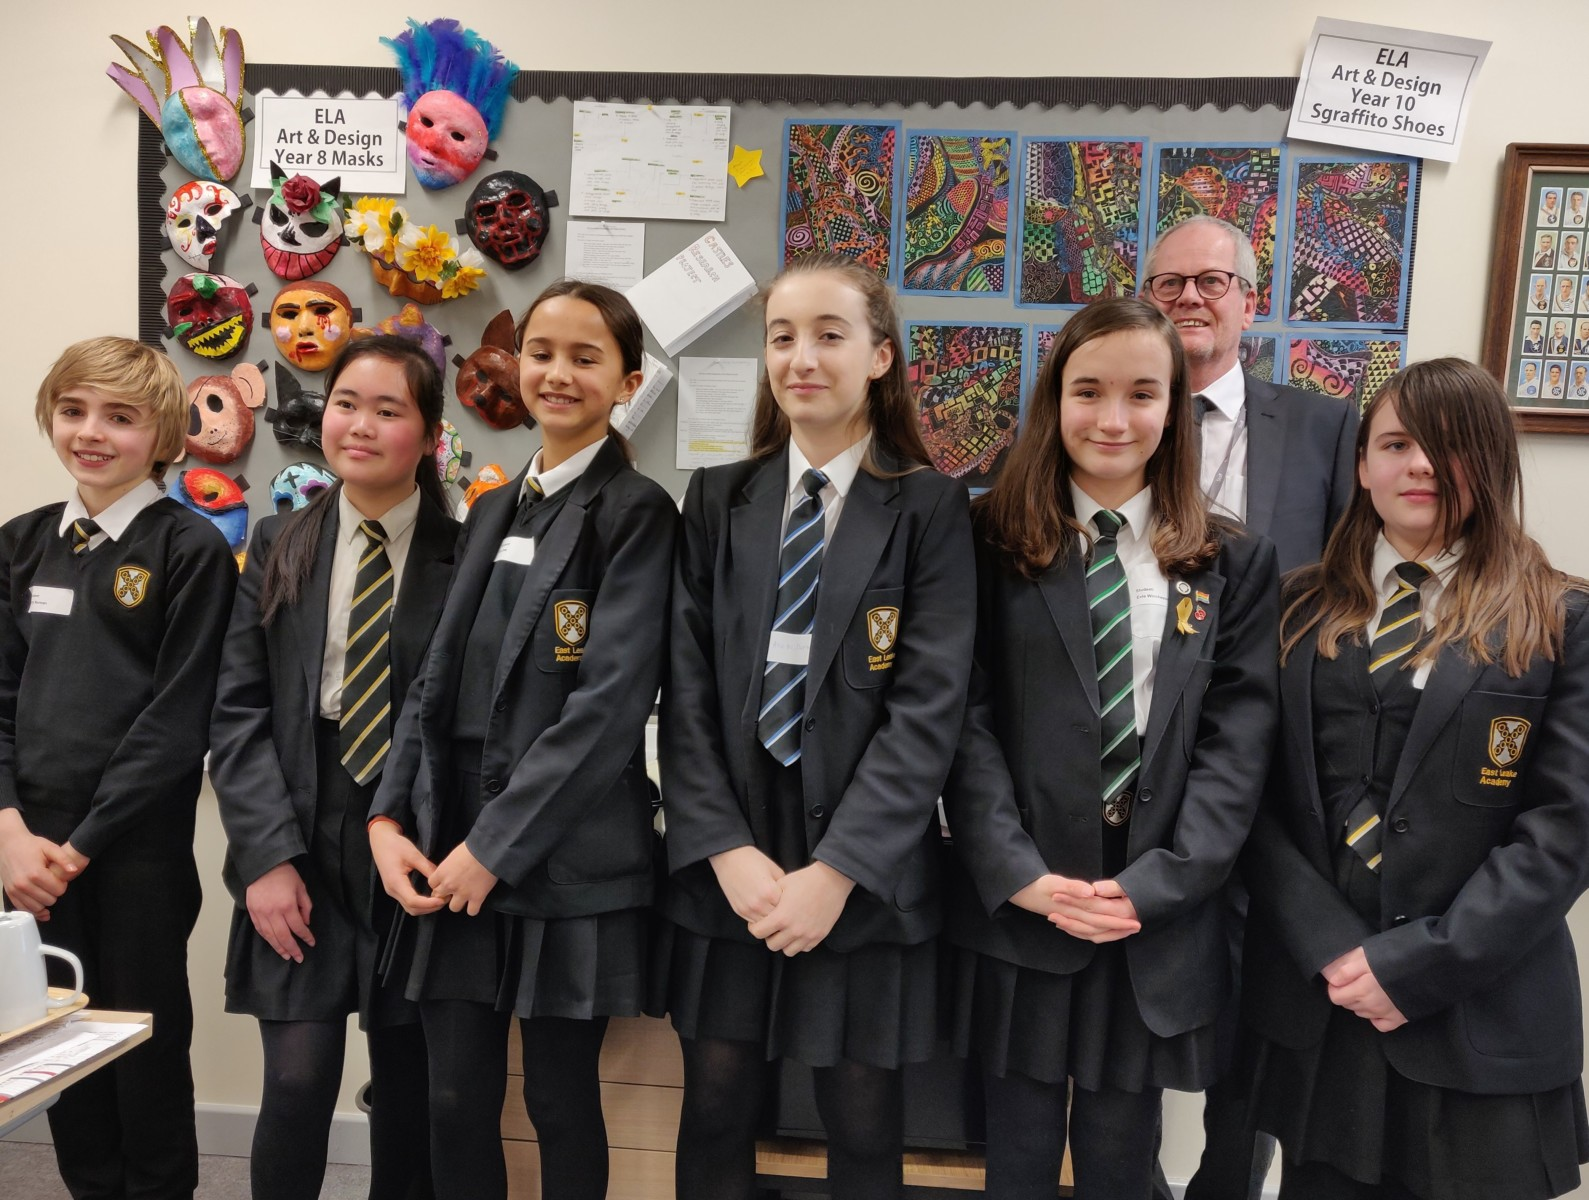 Head office staff welcome special visitors from East Leake Academy